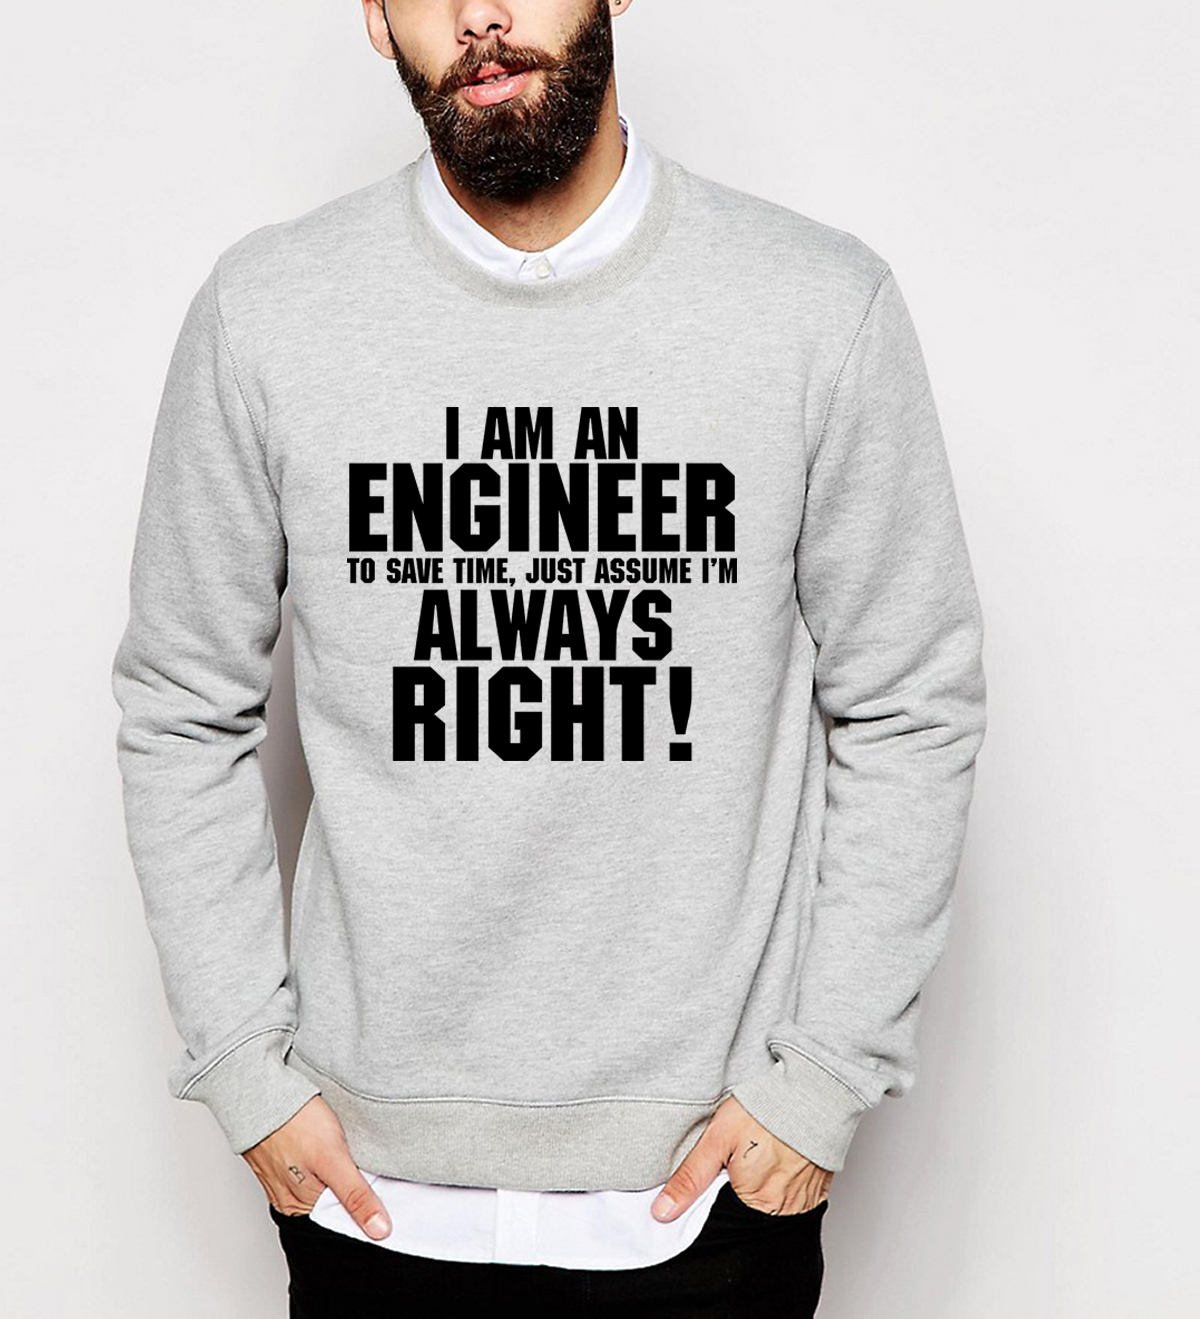 I Am An Engineer I'M Always Right  hoodies 2019 men autumn winter   sweatshirts hip hop brand tracksuit top fashion clothing